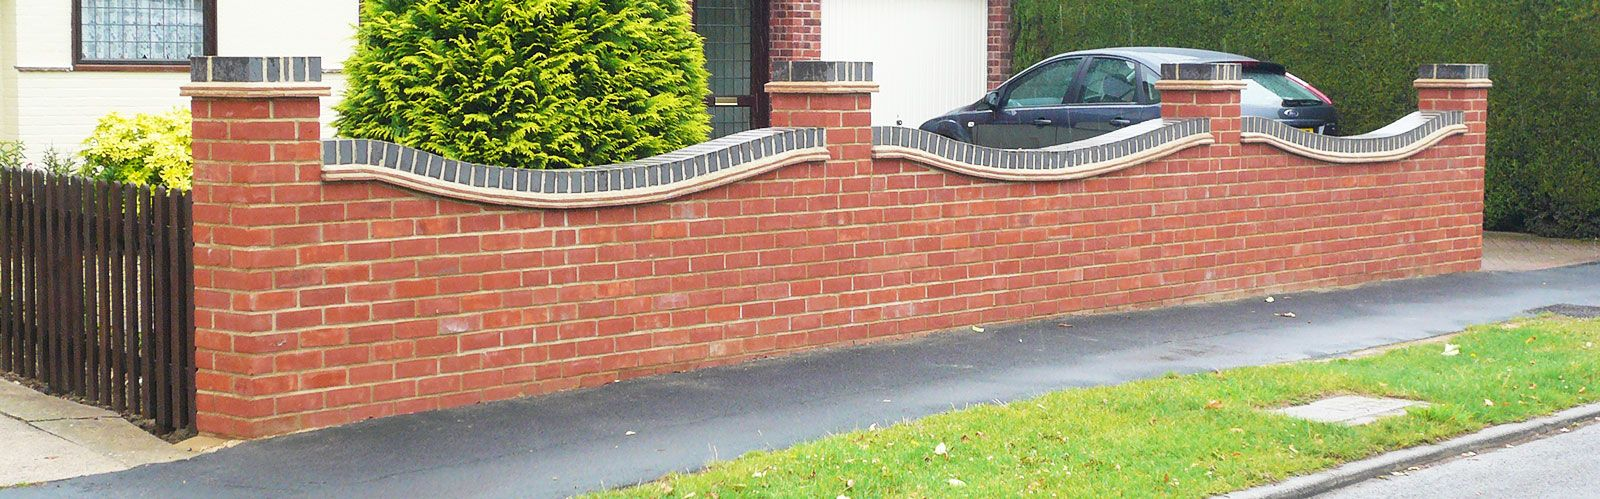 BRICK BOUNDARY WALL WITH GRILL Google Search SIKKA LANDSCAPE